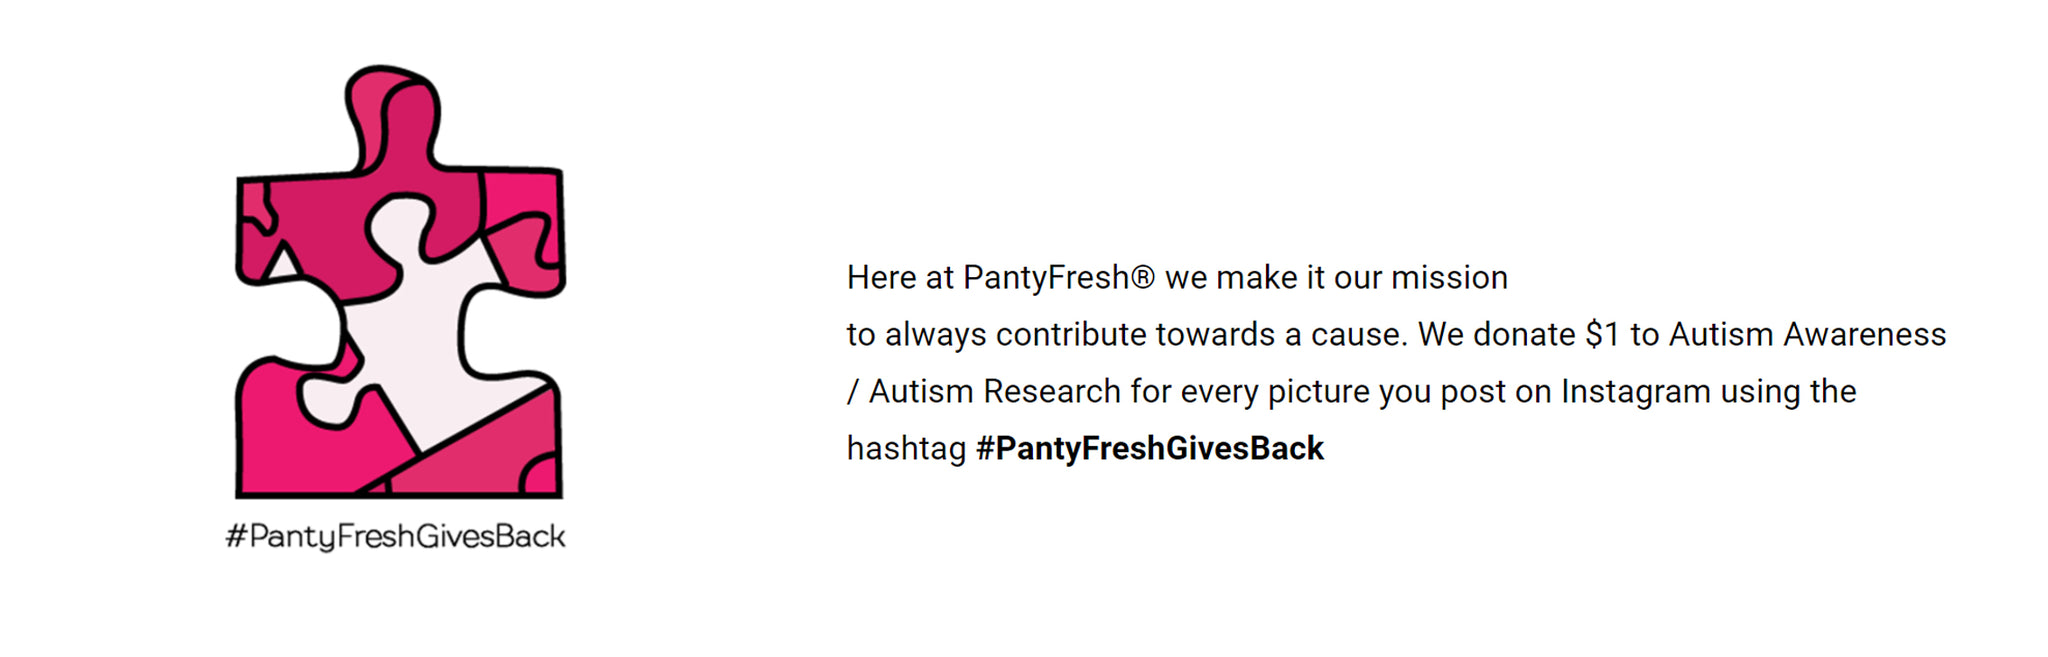 pantyfresh-austism-awareness-png-give-back